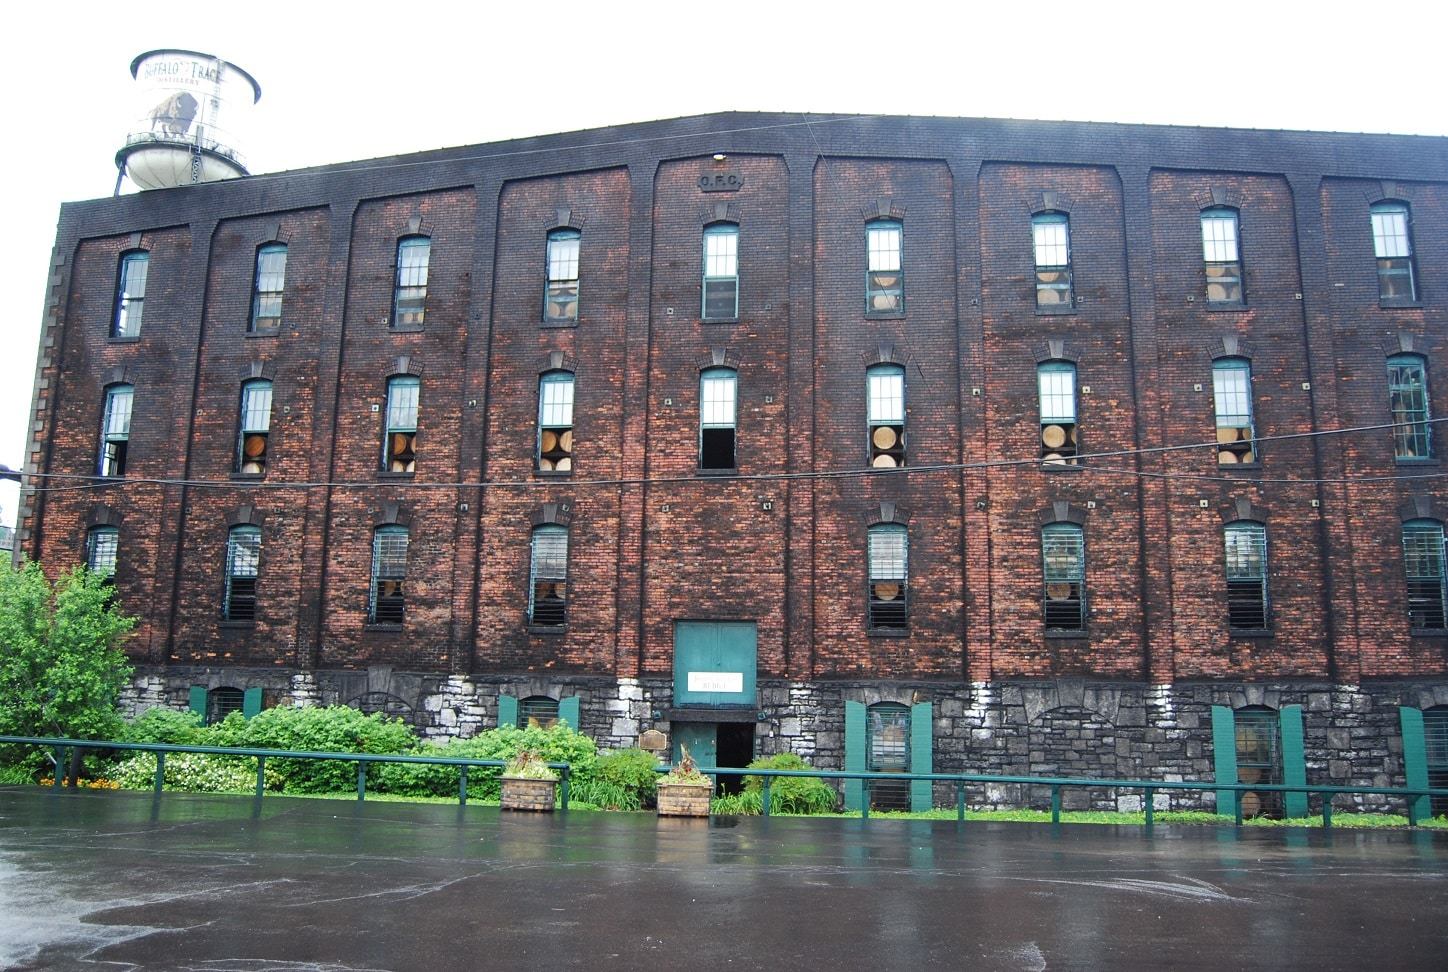 Three story red brick building with 31 tall windows trimmed in aqua displaying wooden barrels through the window